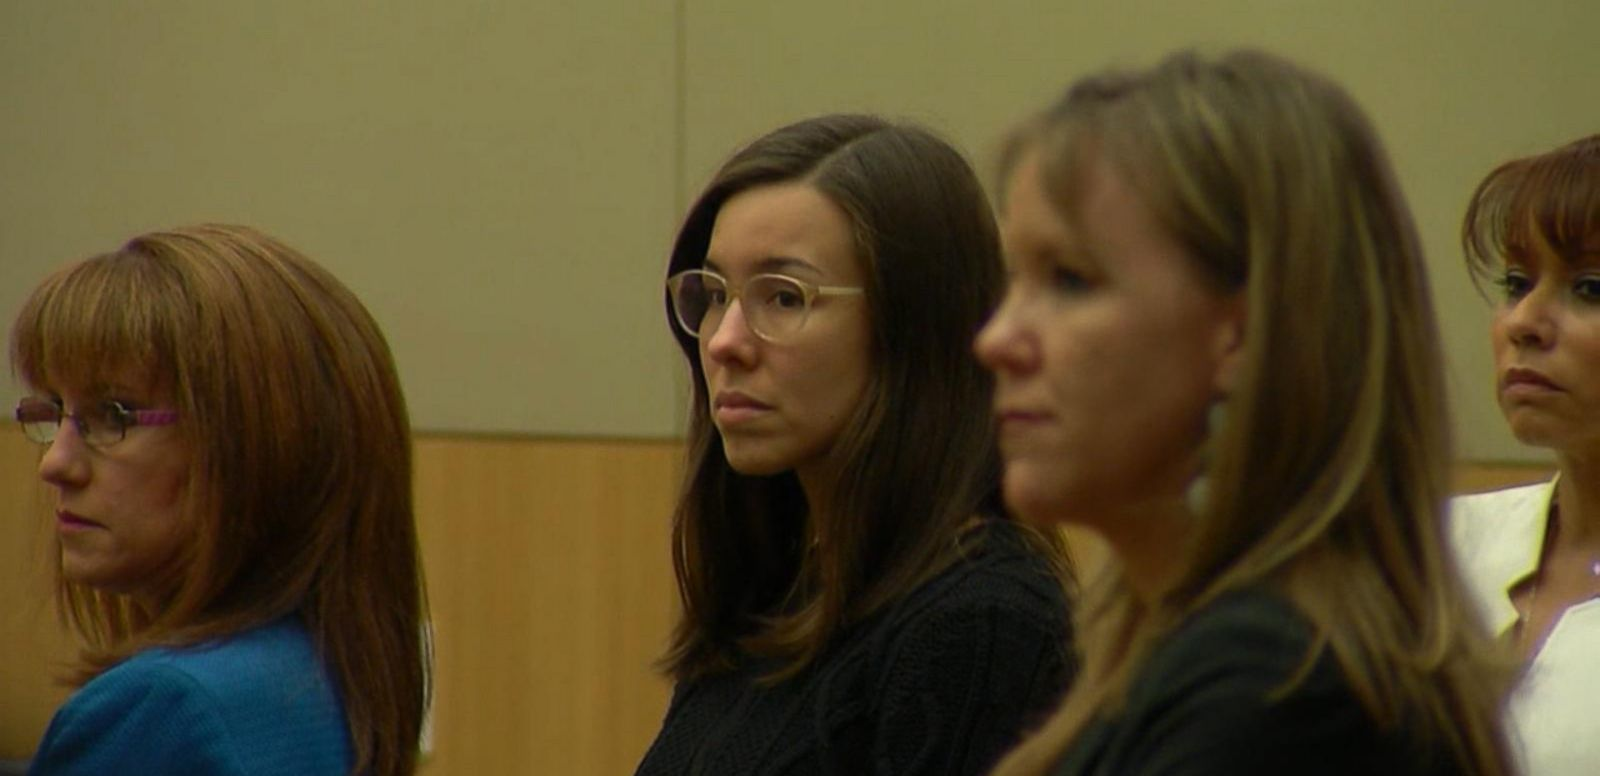 VIDEO: For the second time, a jury deadlocks in the sentencing phase of Jodi Arias.